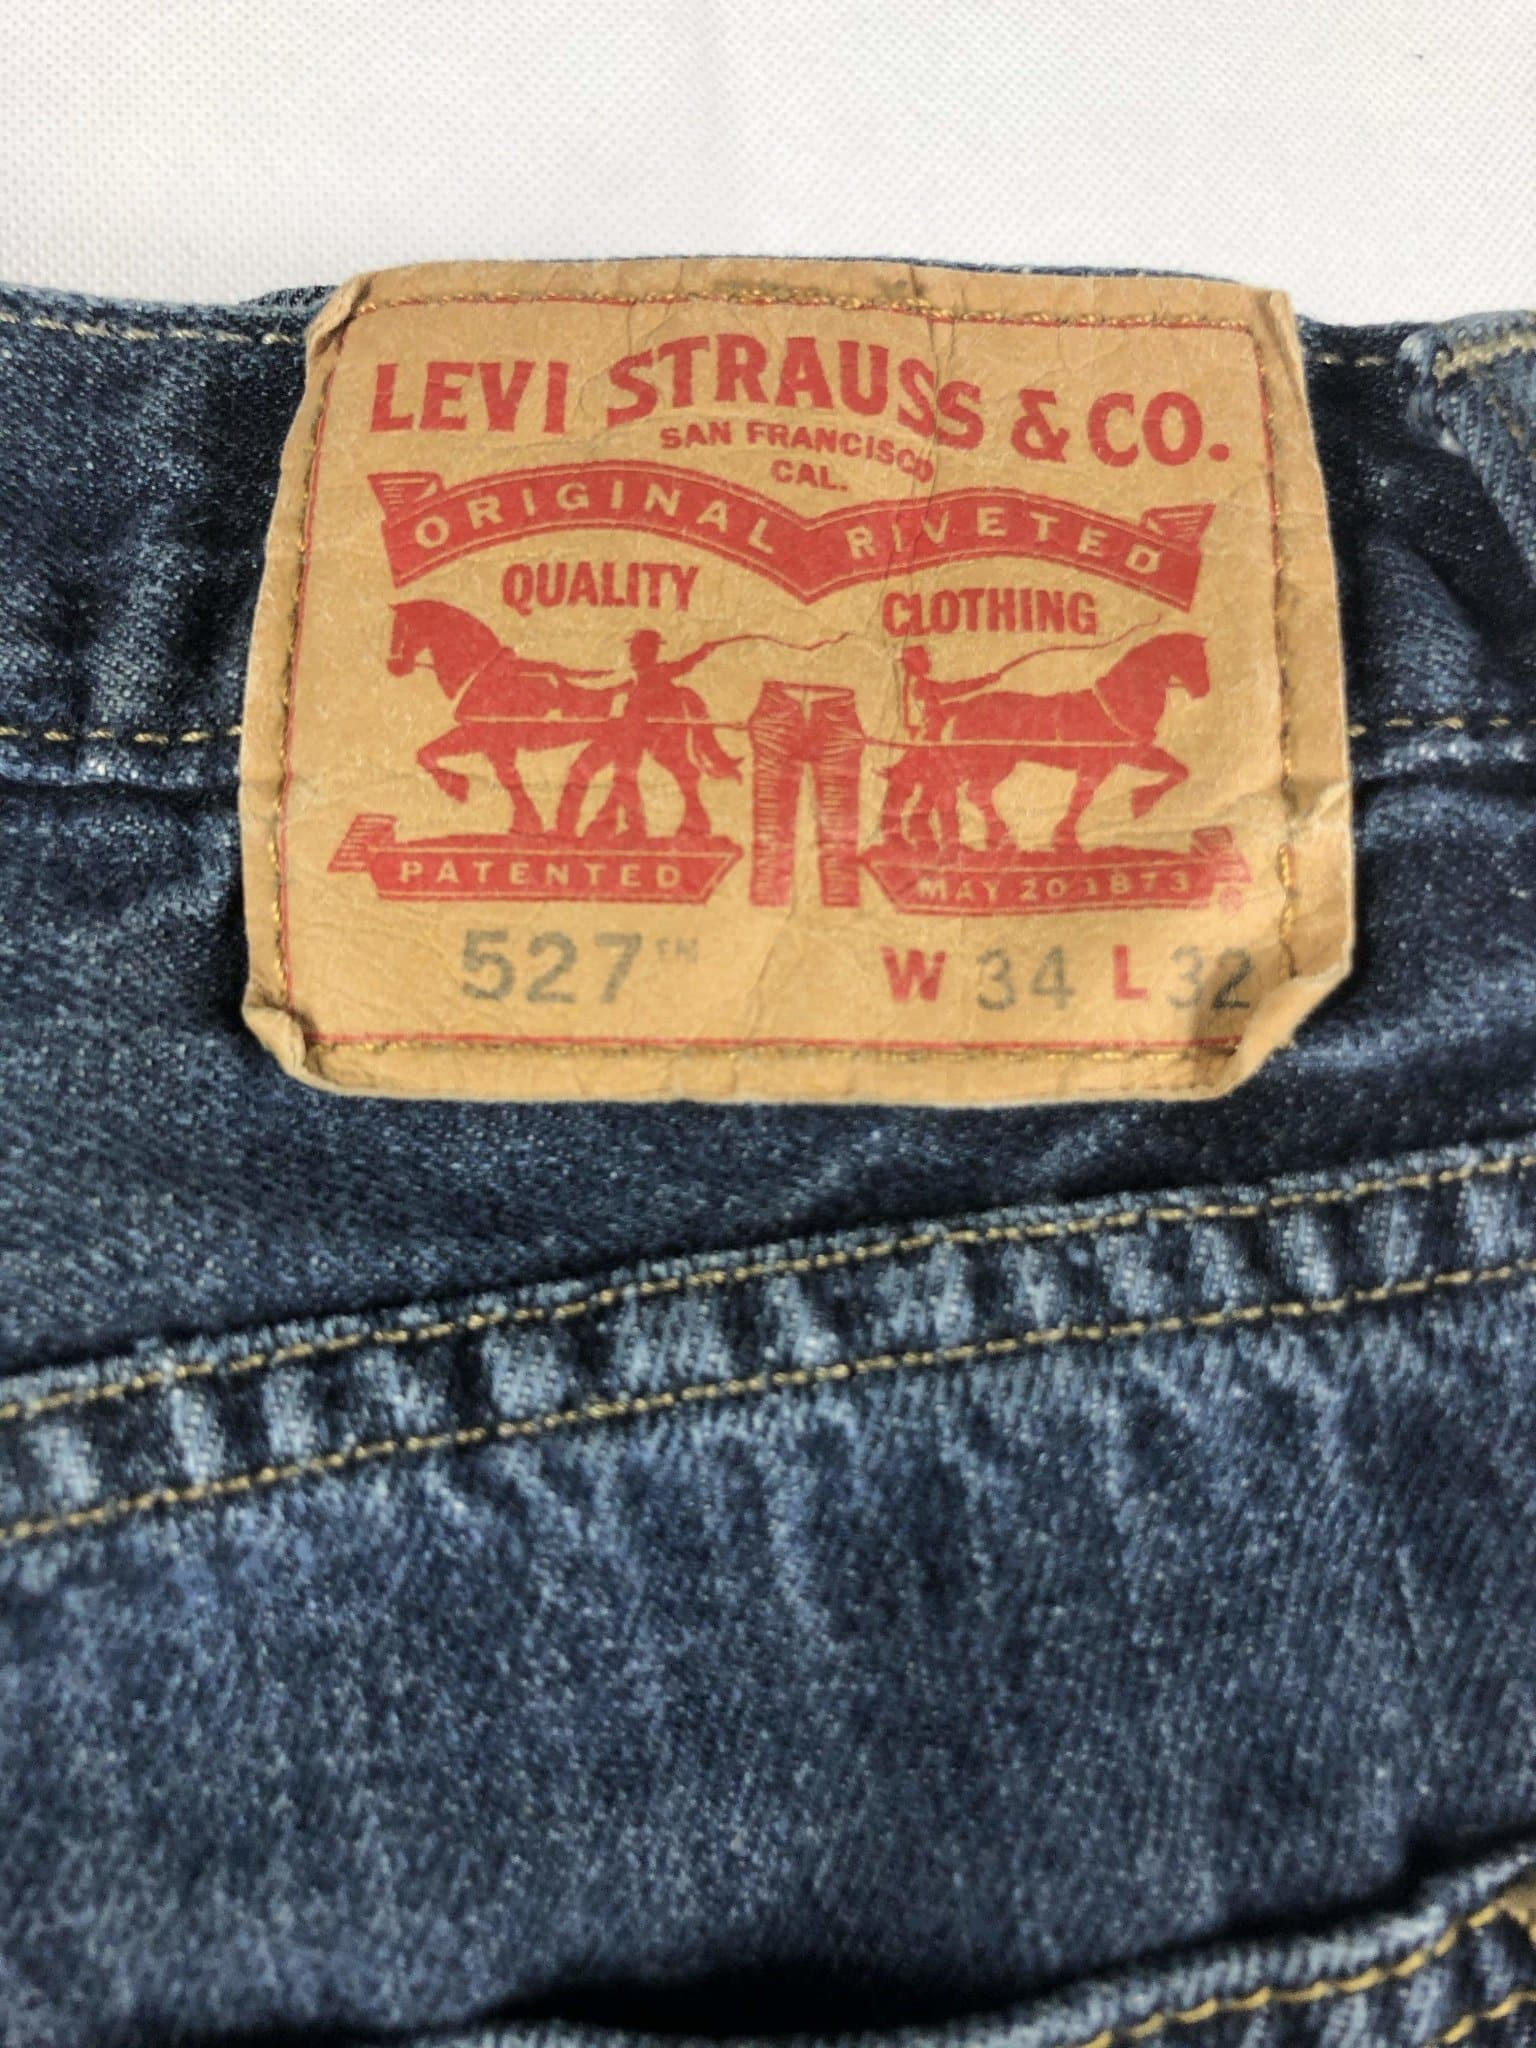 Vintage Levi's 527 Jeans W34 L32 (F1) - Discounted Deals UK